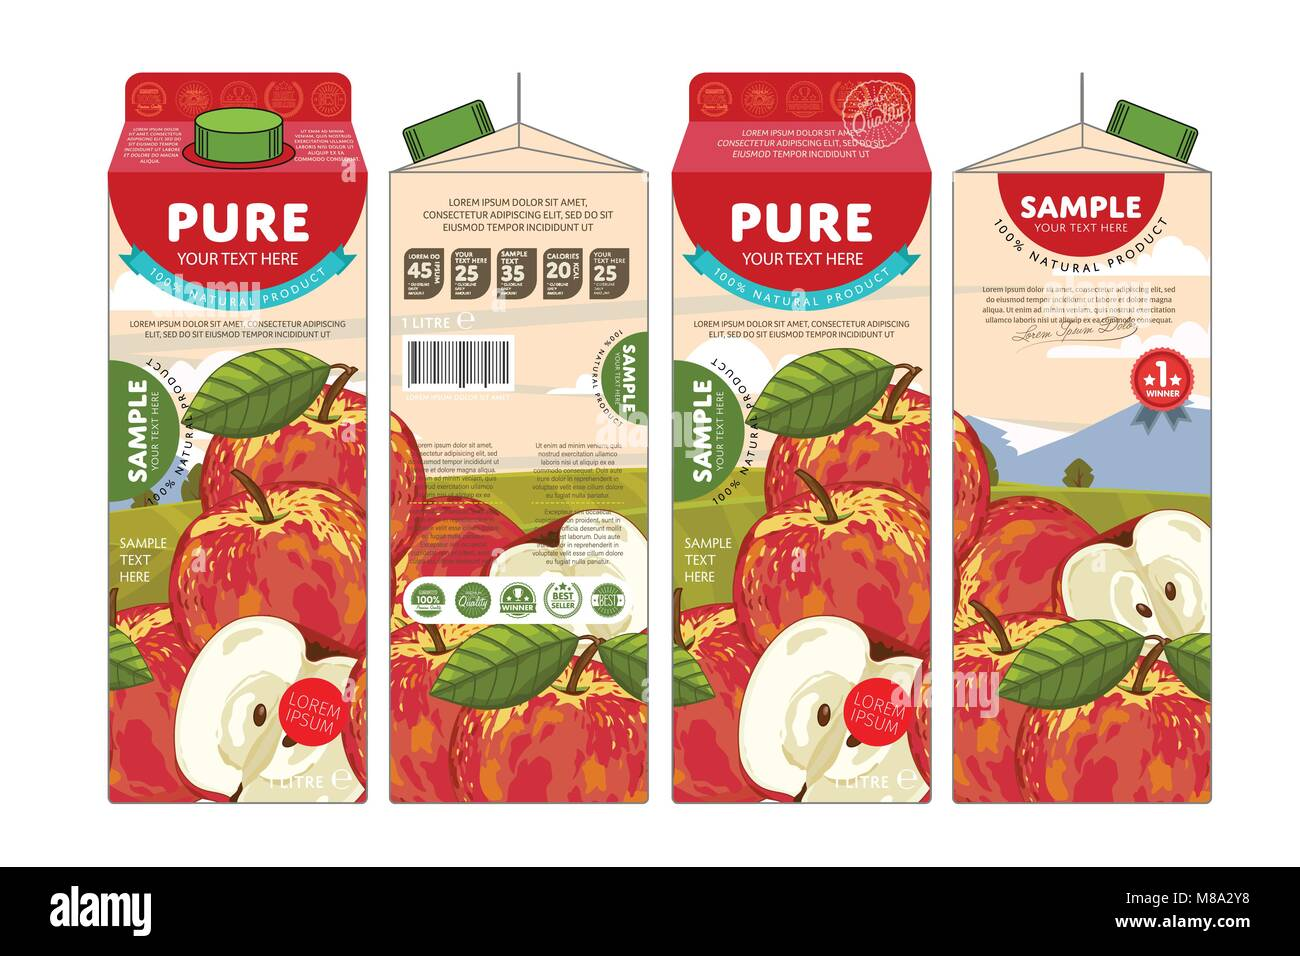 Jus de pomme Packaging Design Template Photo Stock